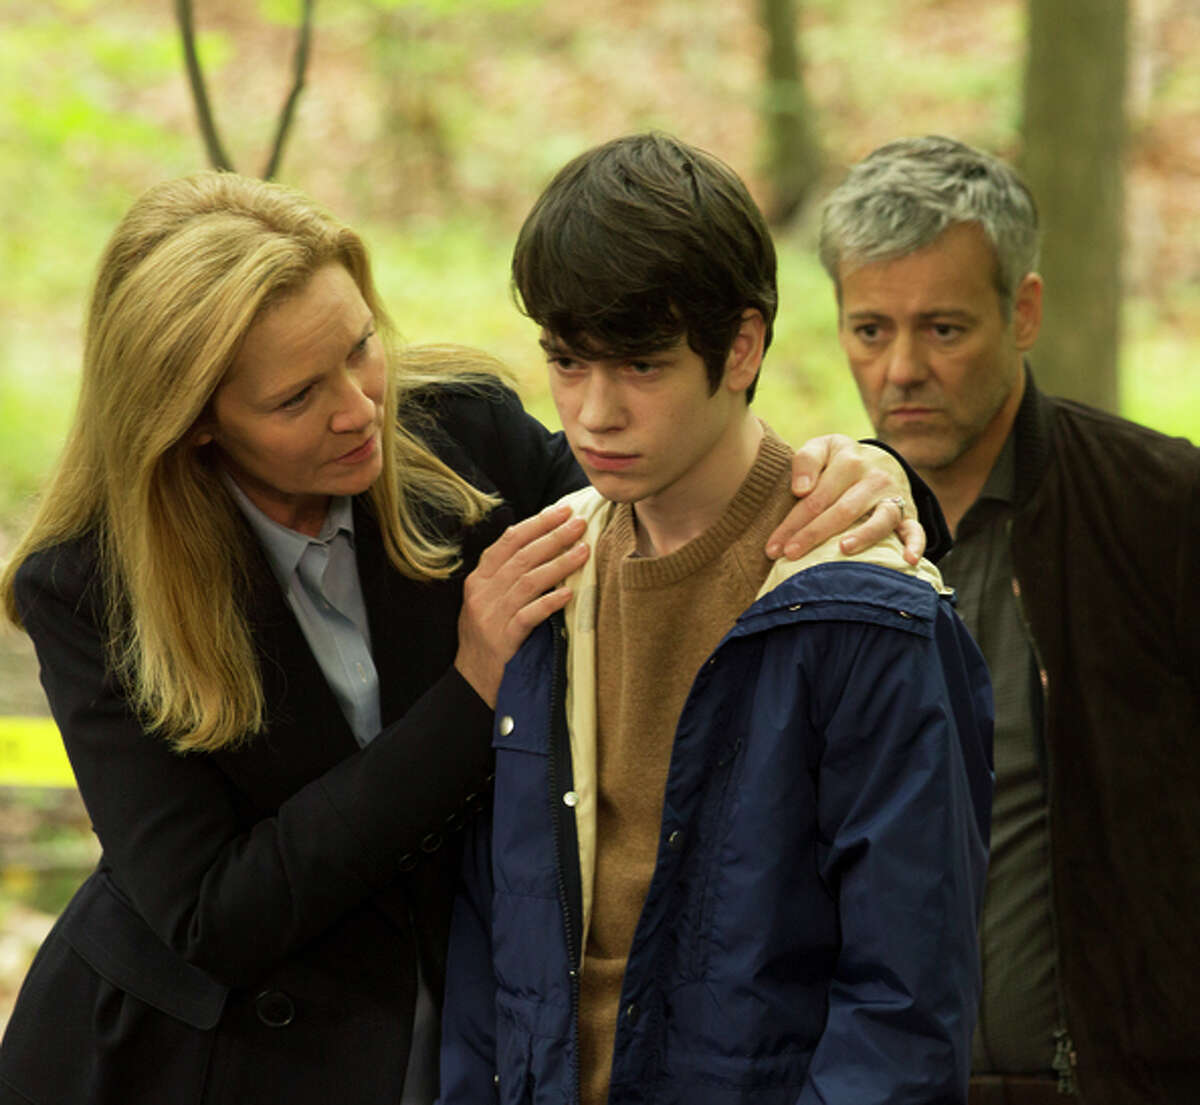 Liam James (with Joan Allen, Rupert Graves) as an abducted boy who returns.